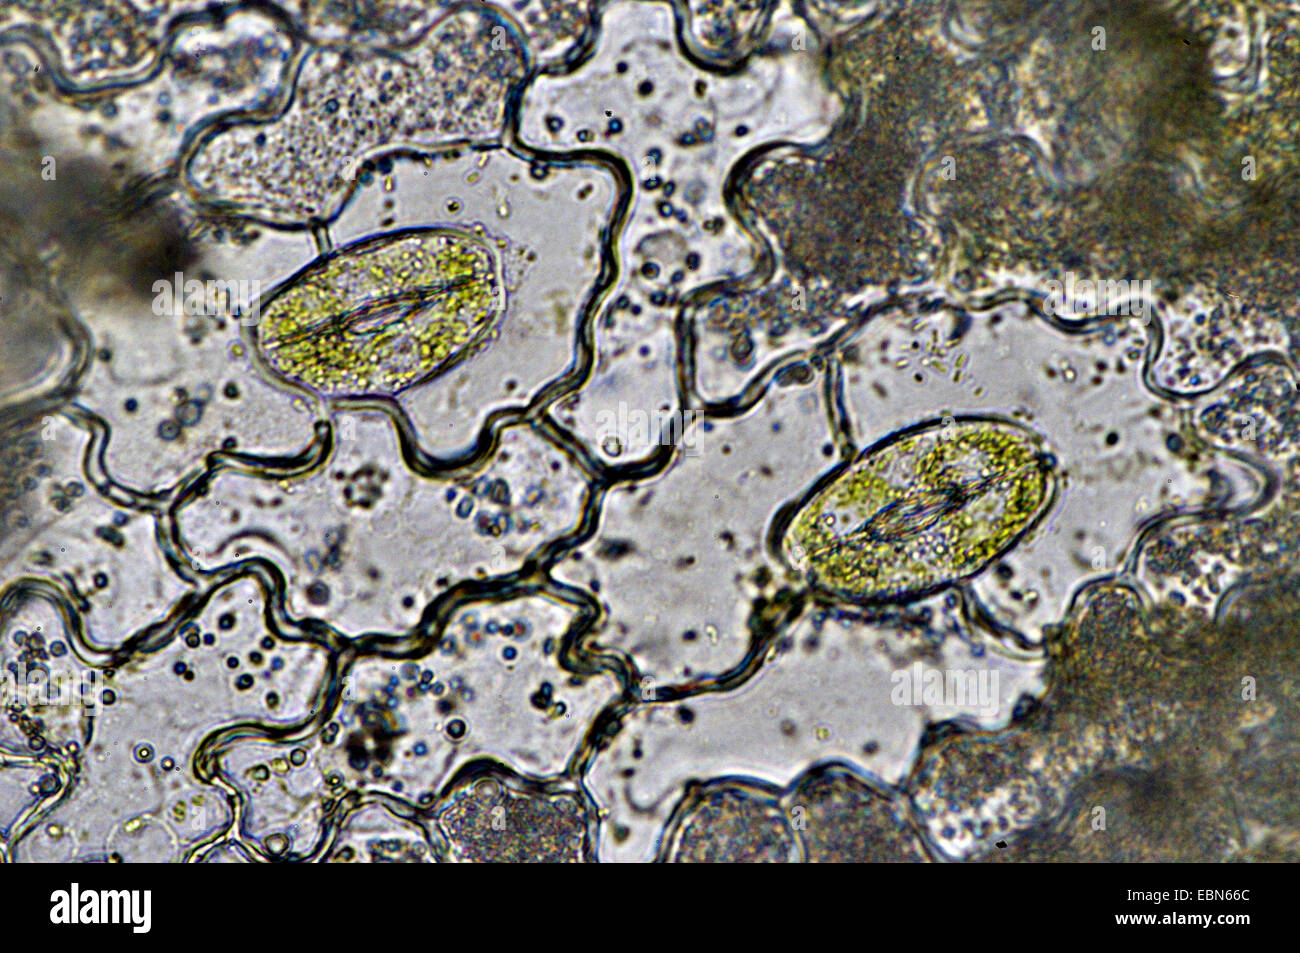 Stomata from the leaf of a windo plant - Stock Image